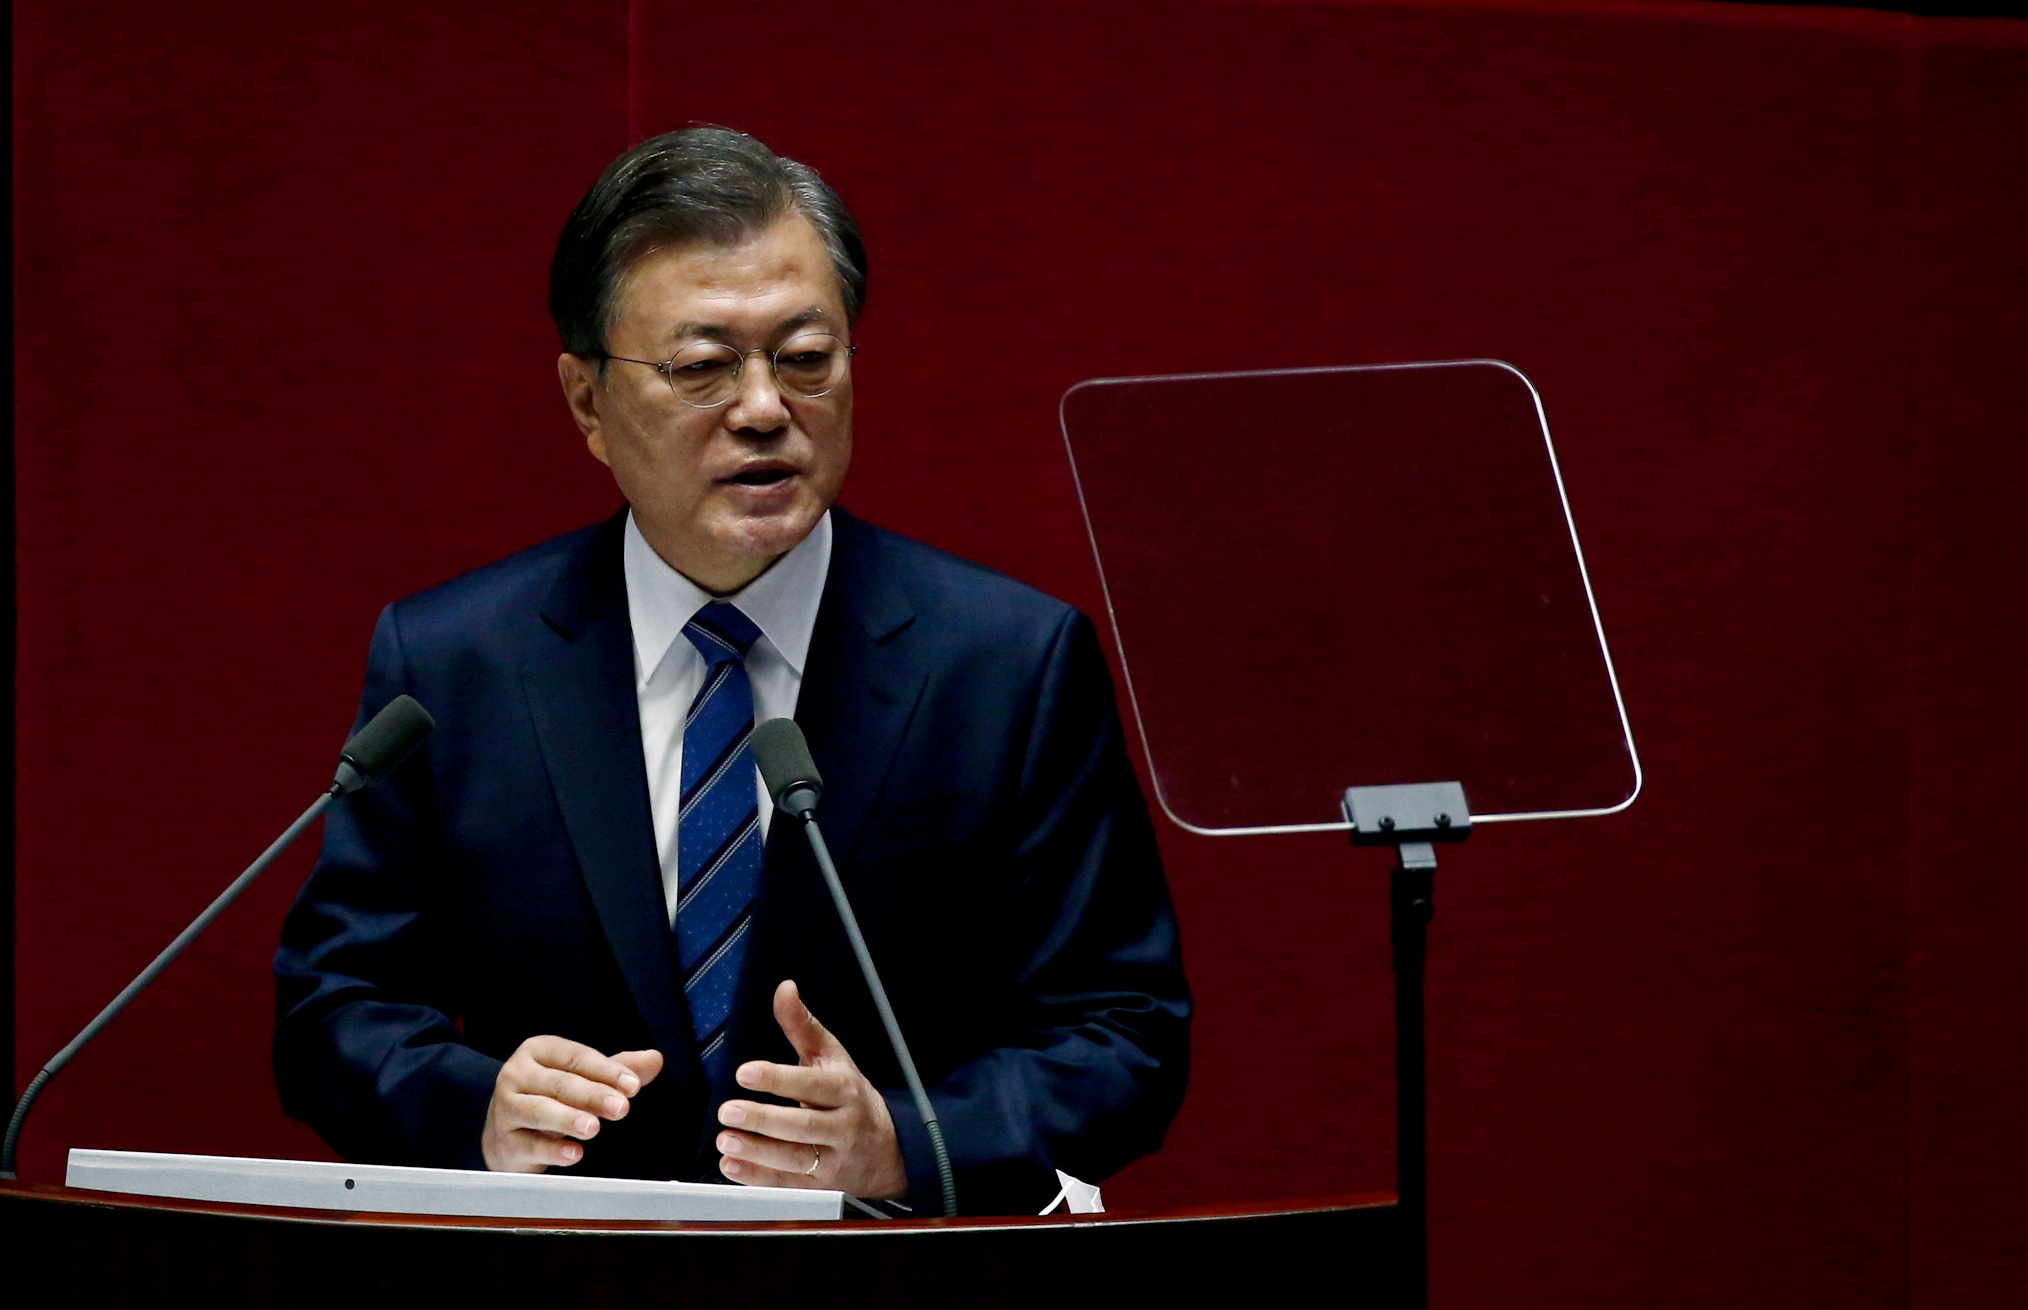 South Korean President Moon Jae-in speaks at the National Assembly in Seoul, South Korea, October 28, 2020. Jeon Heon-Kyun/Pool via REUTERS